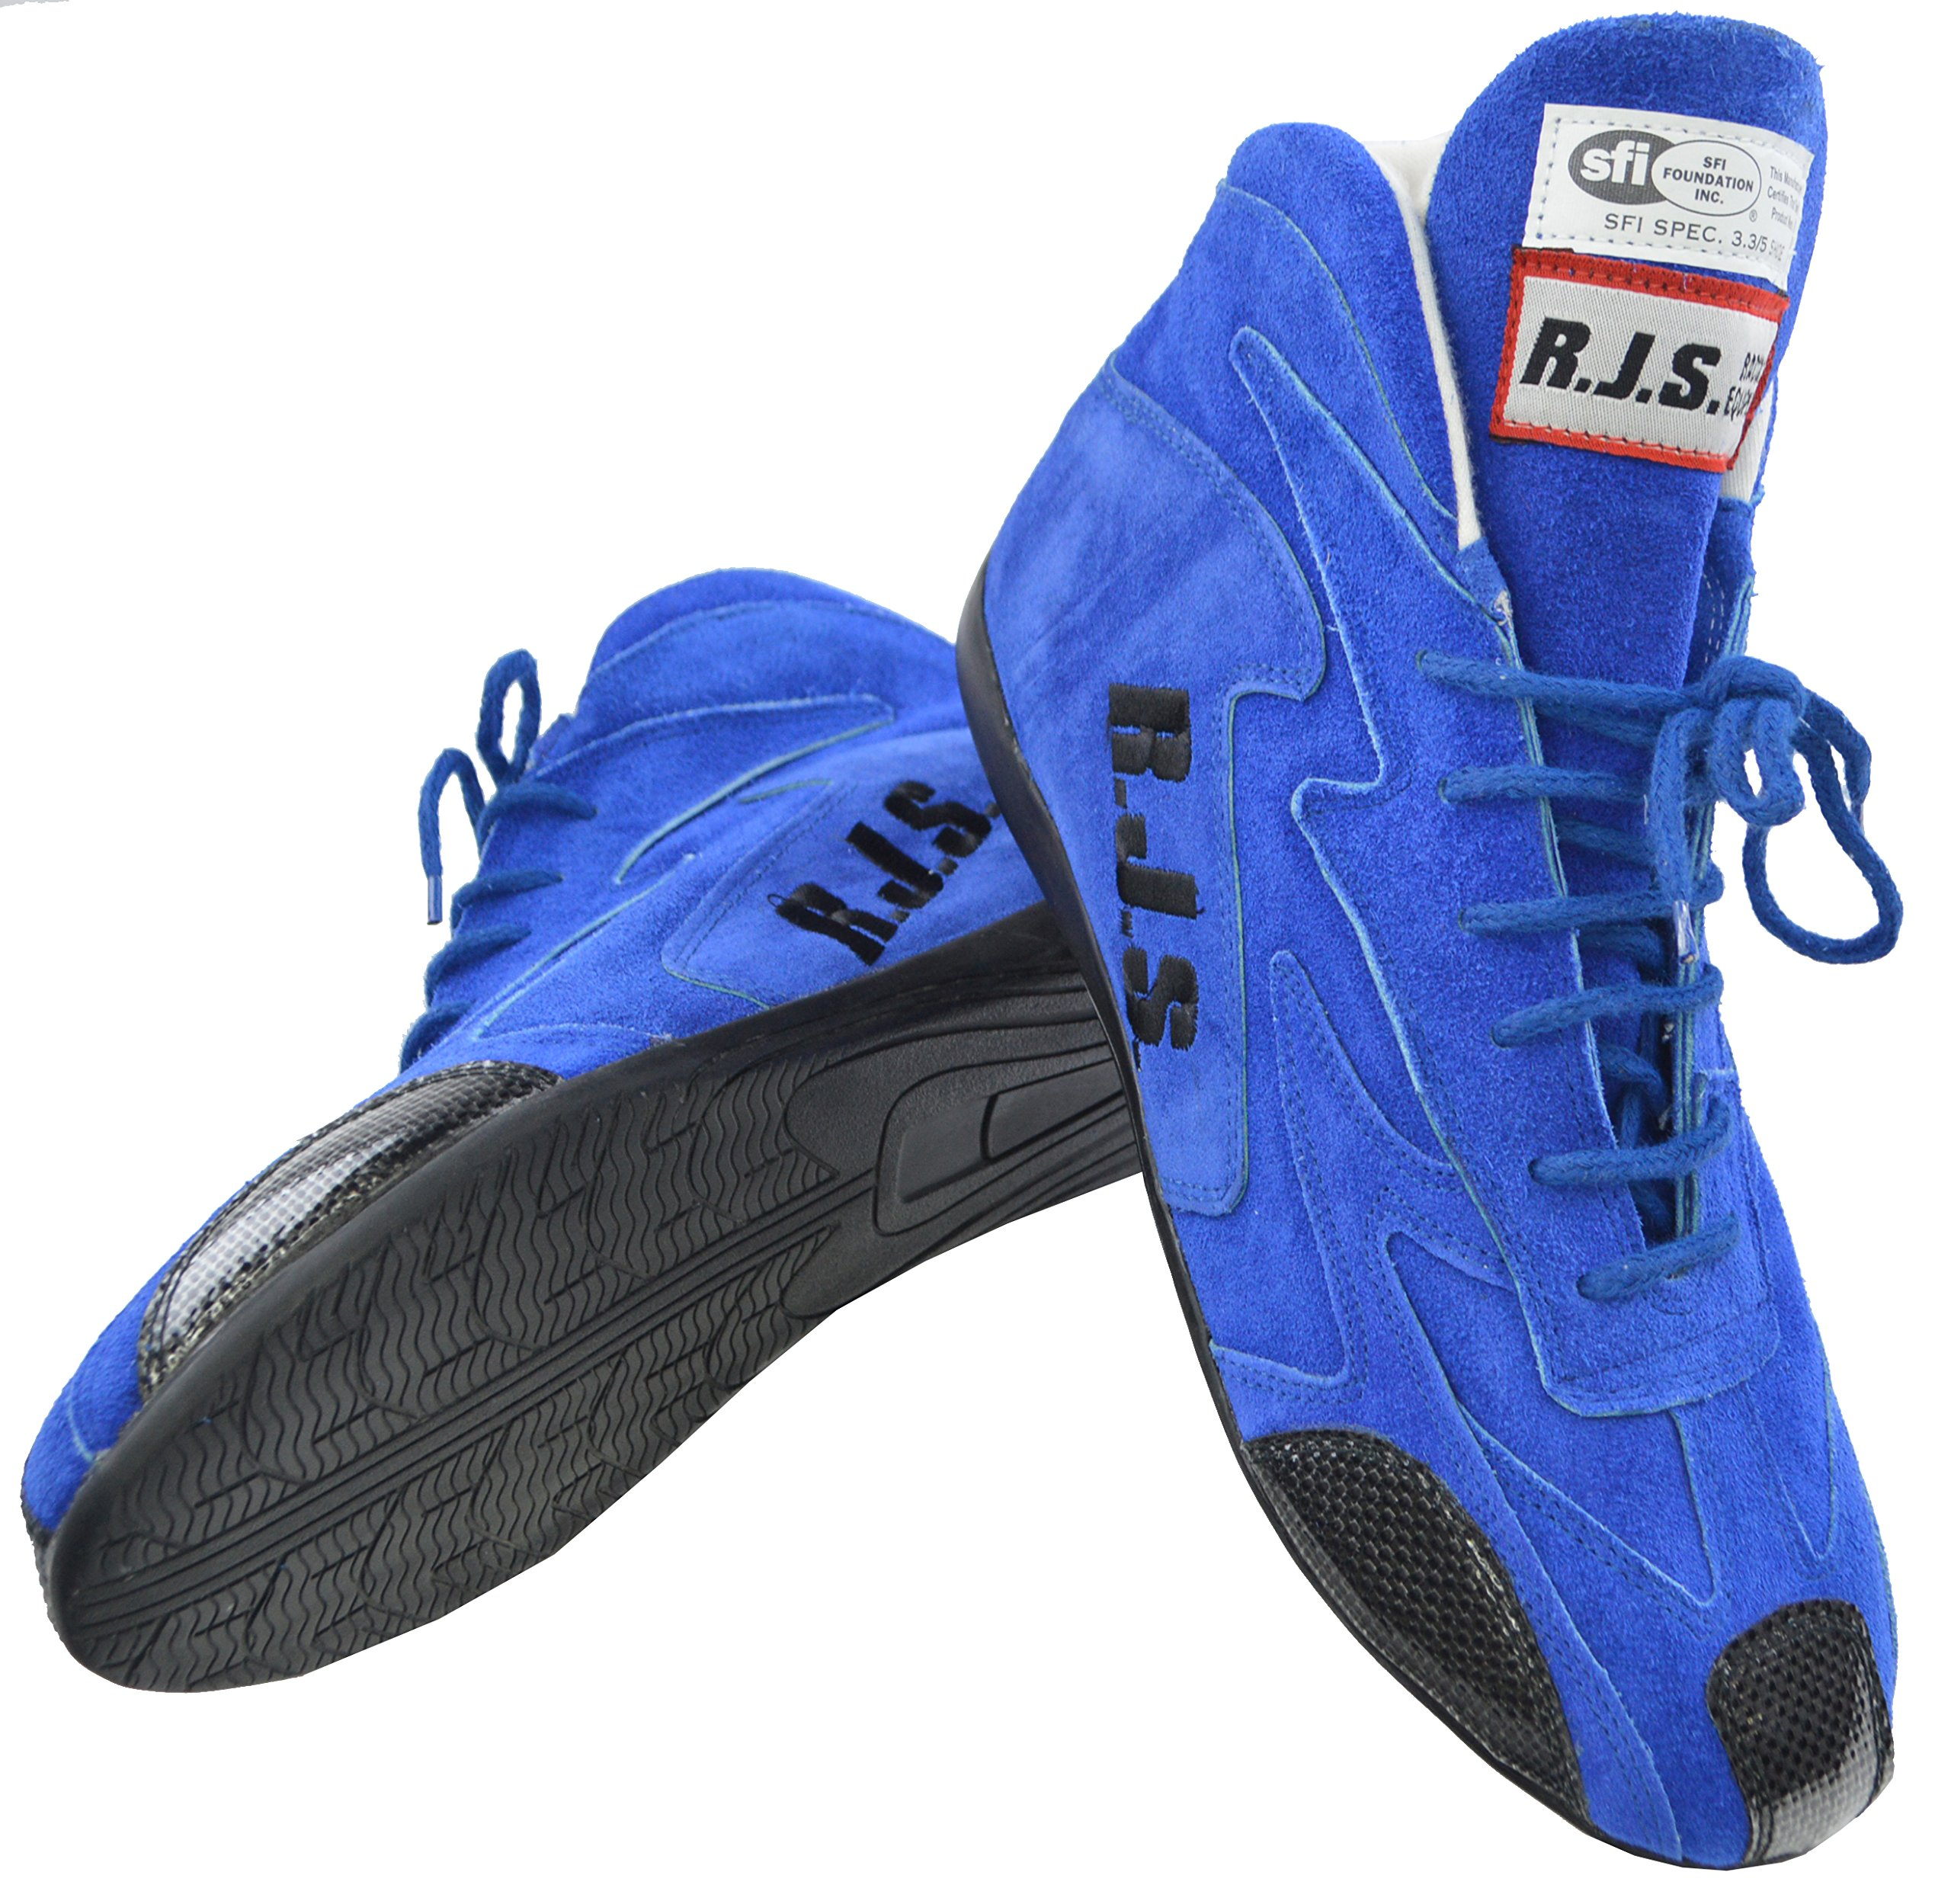 1a8b59dc396b96 NET RJS RACING SFI 3.3 5 RACING DRIVING SHOES BLUE MENS 10